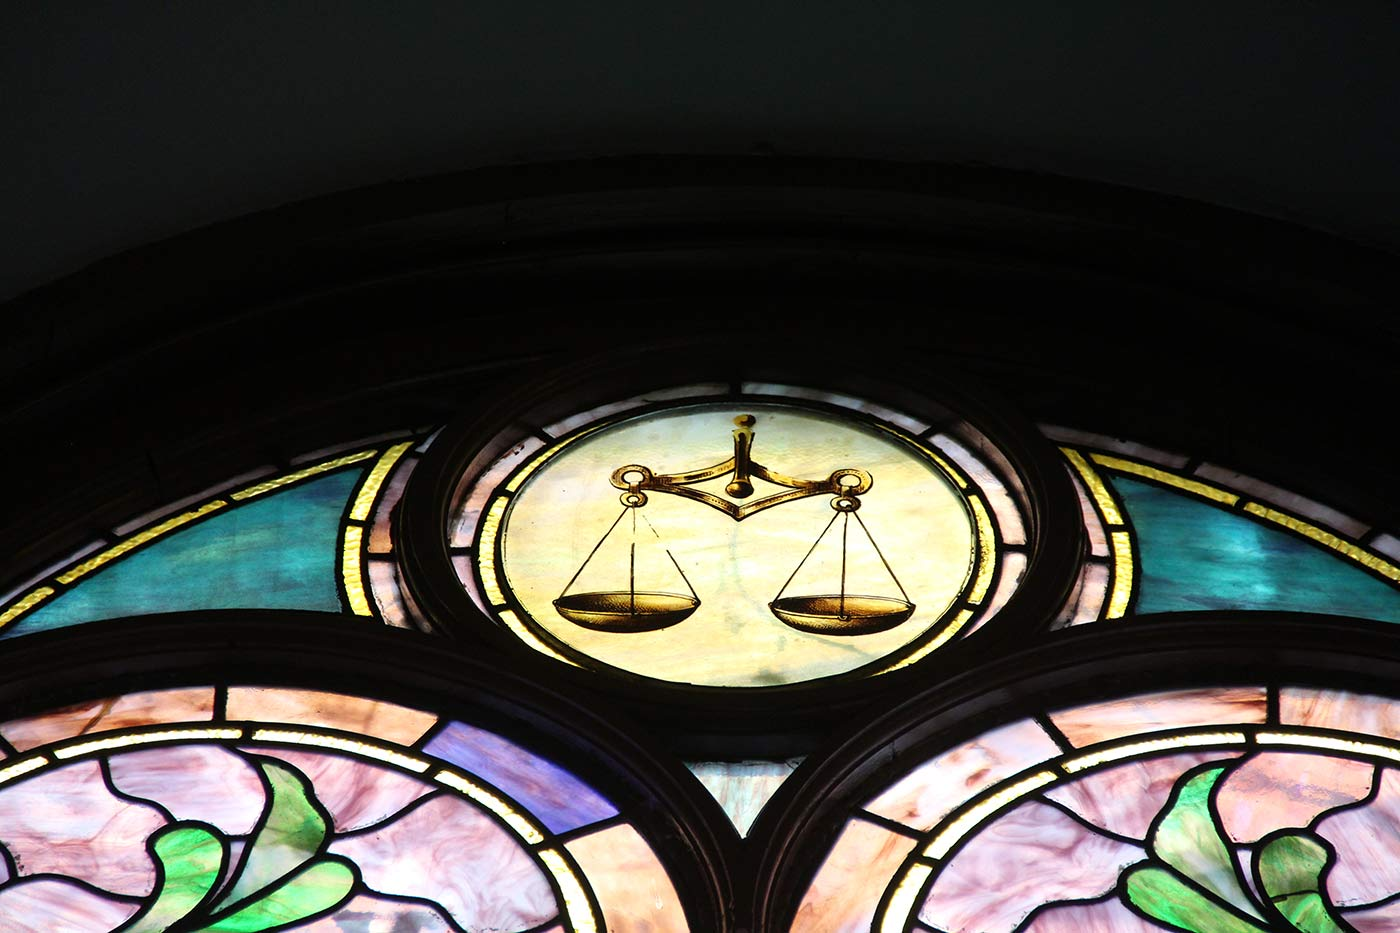 Stained glass detail: balance scale.